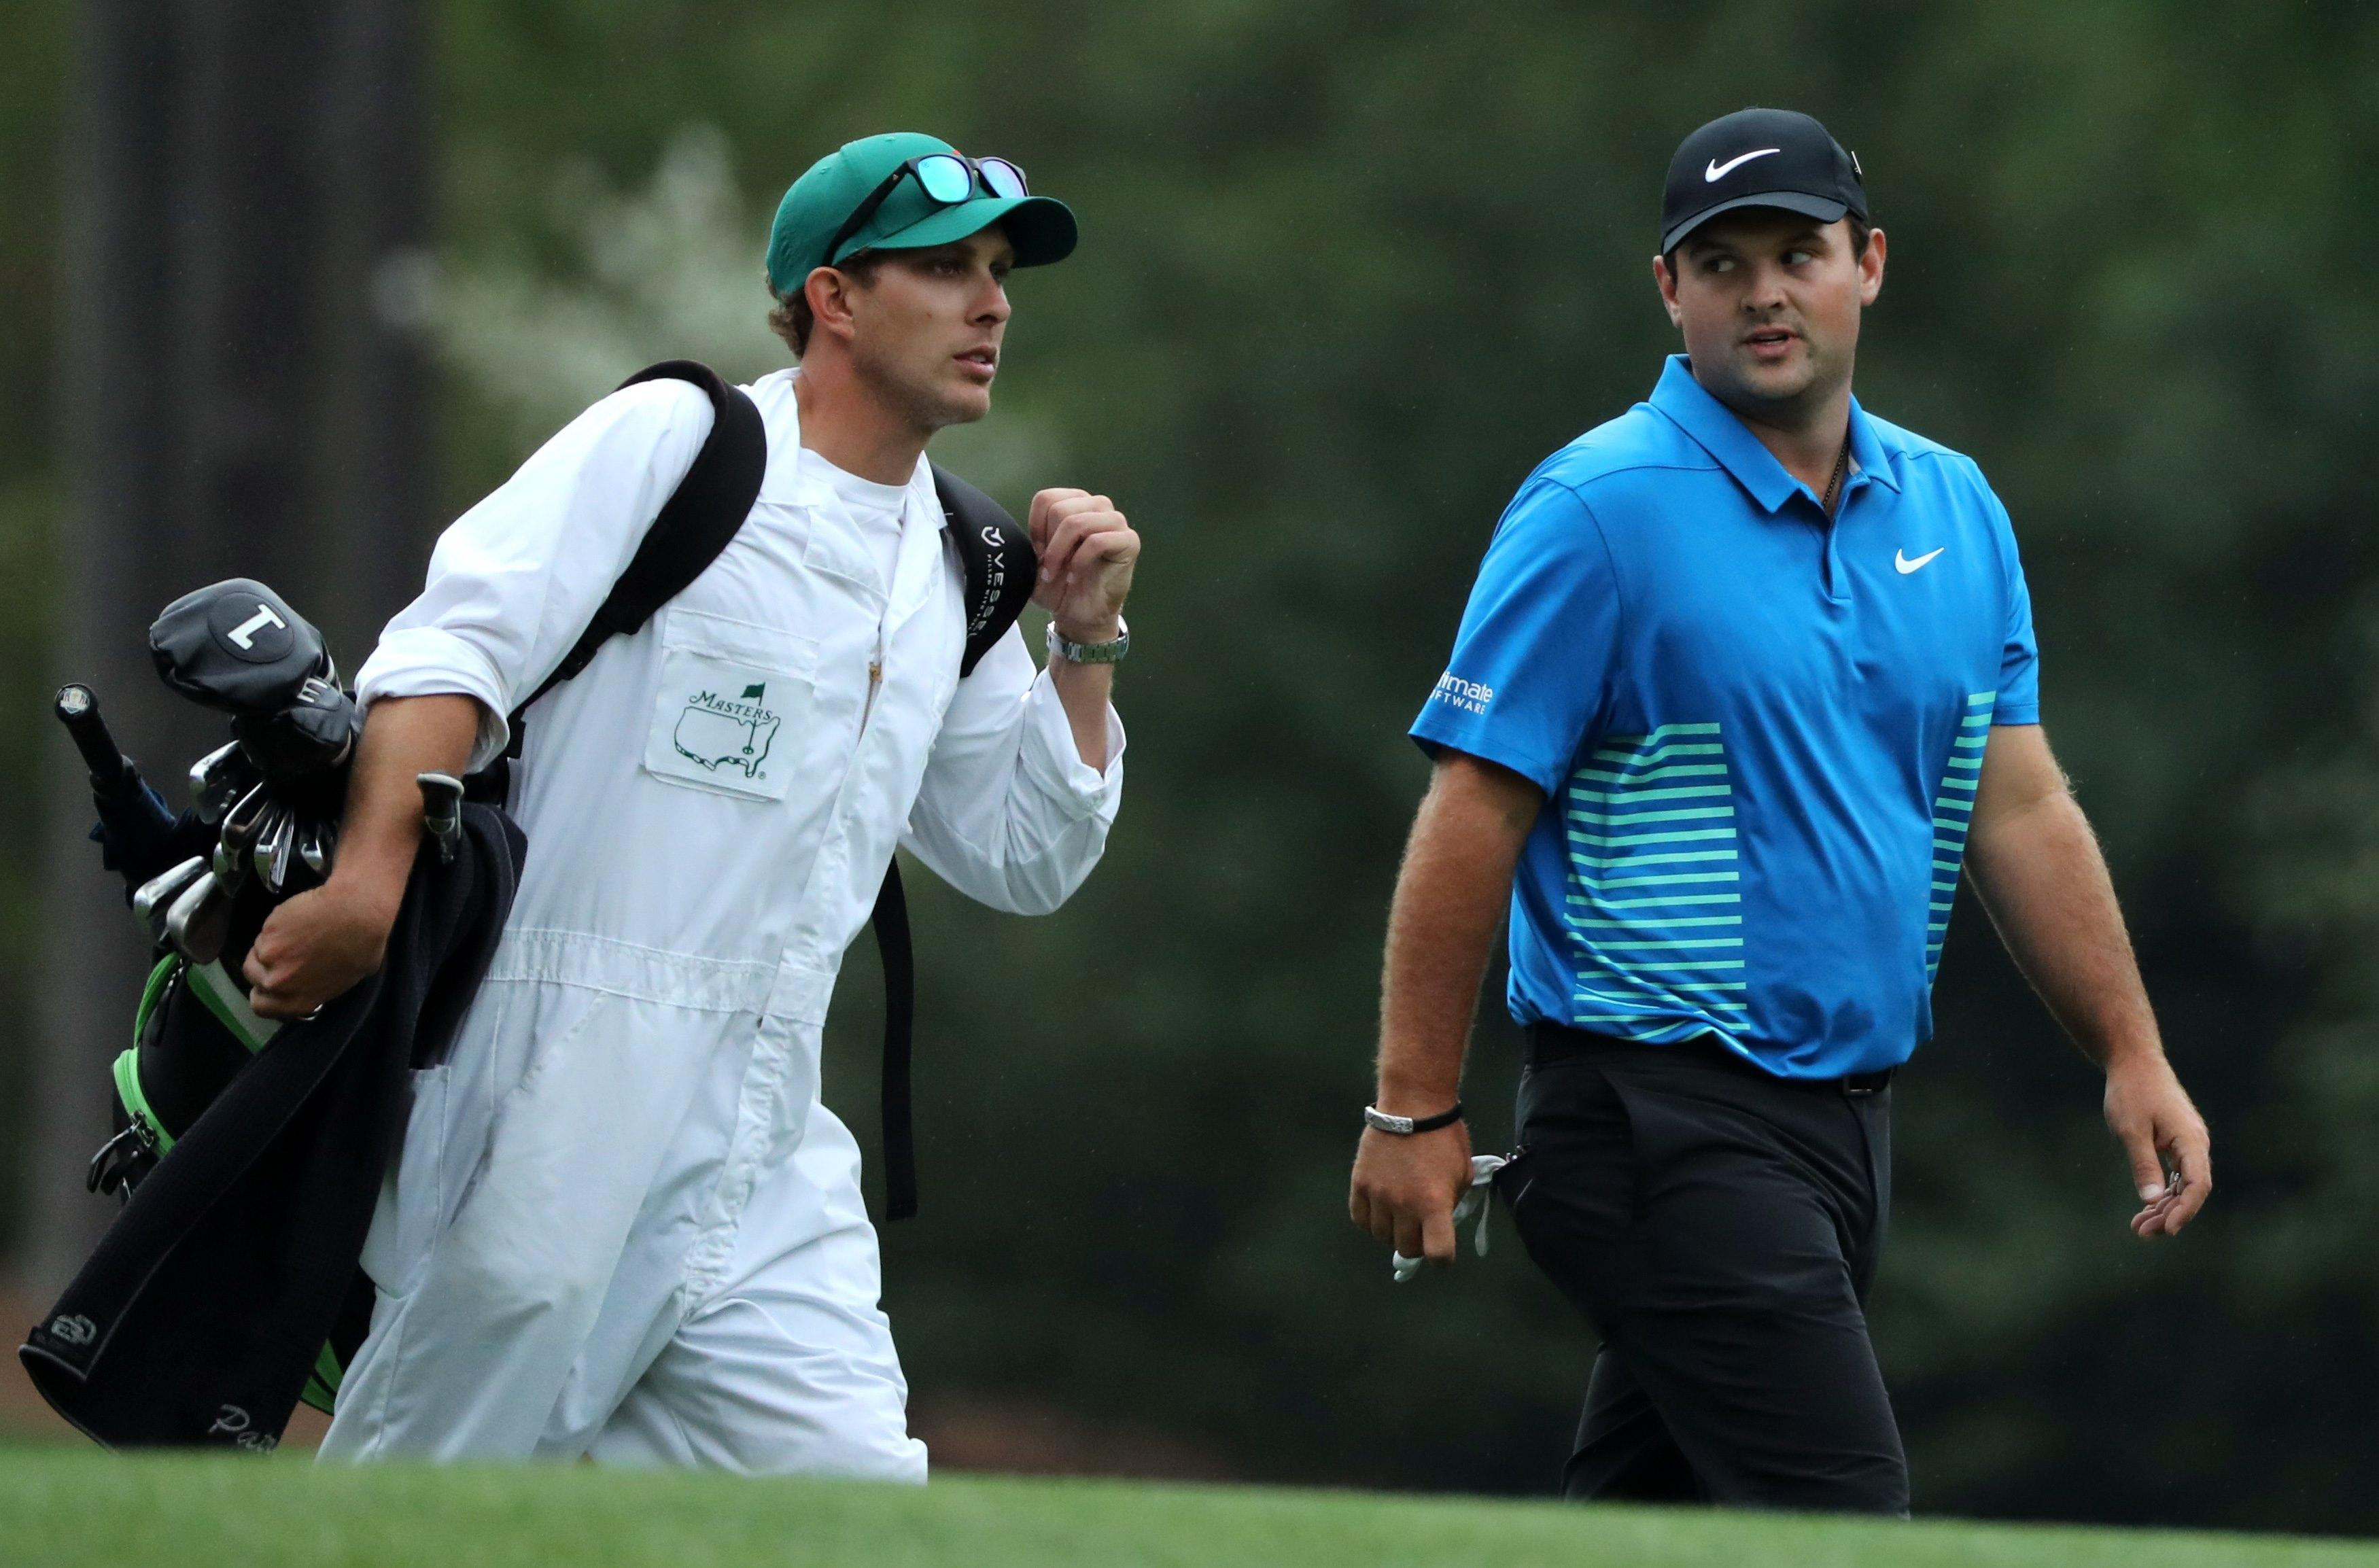 Brother Kessler Karain is Reed's caddie for the 2018 Masters